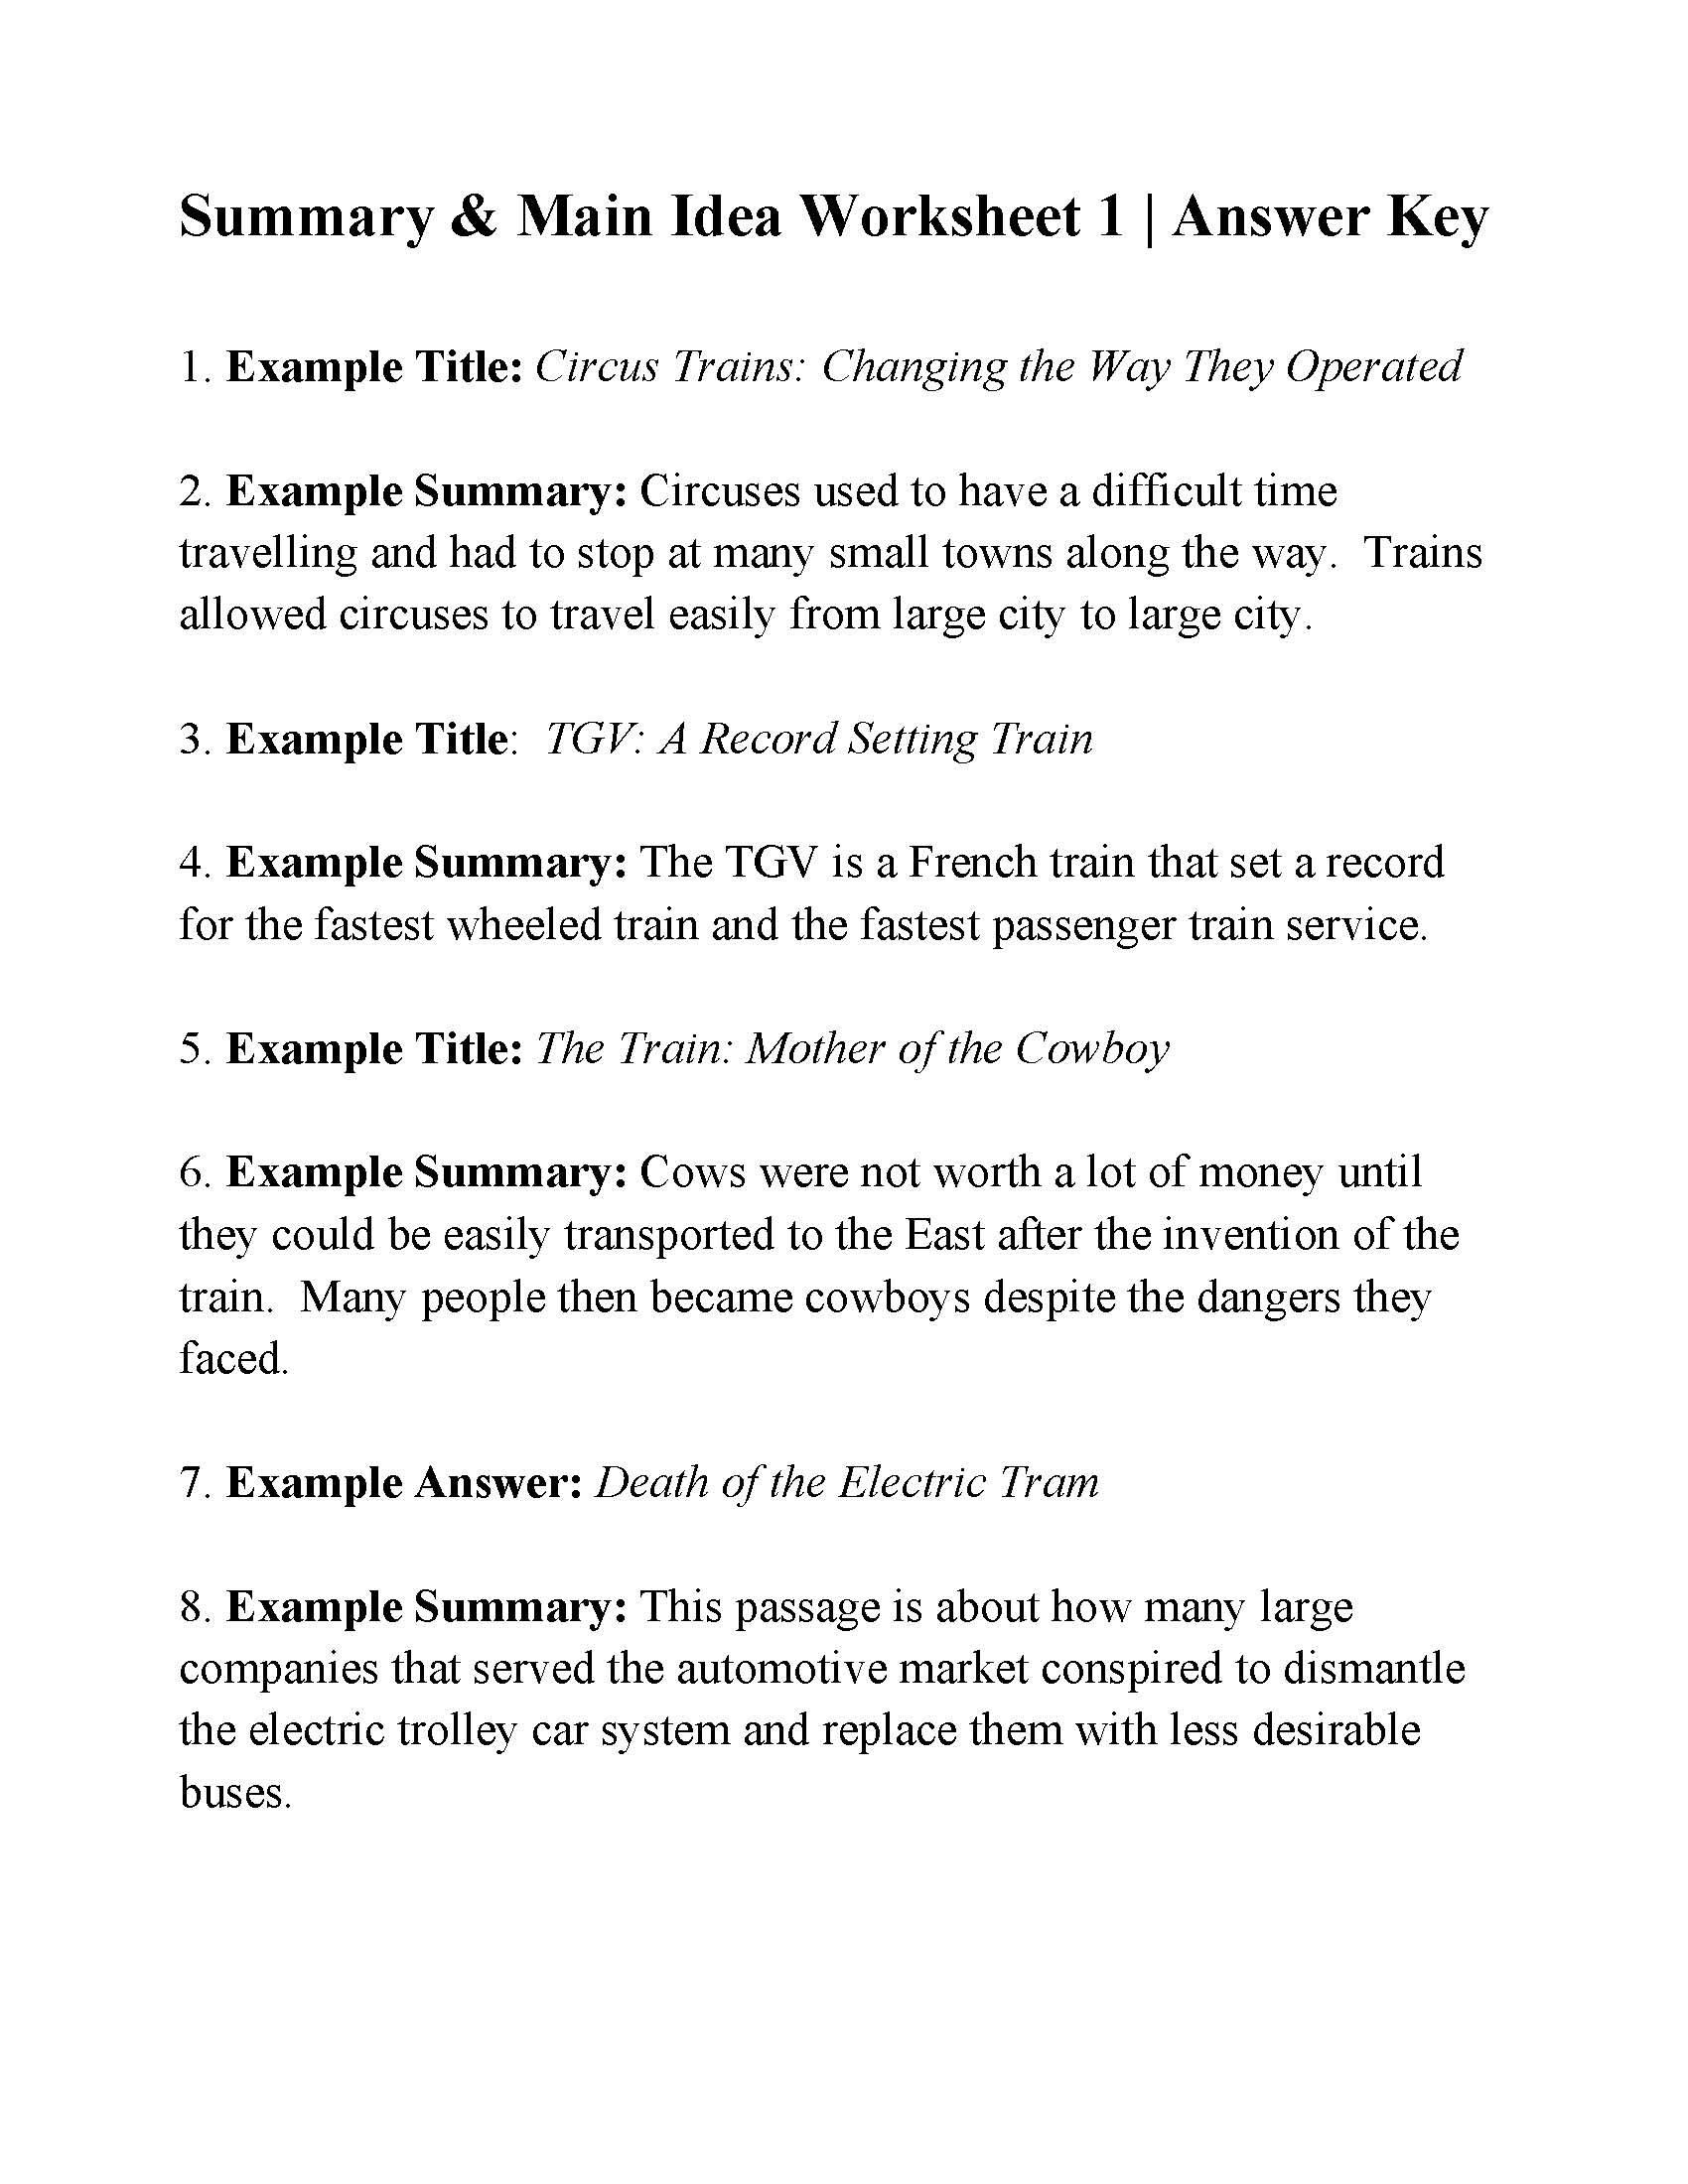 Main Idea Worksheet 4 This is the Answer Key for the Summary and Main Idea